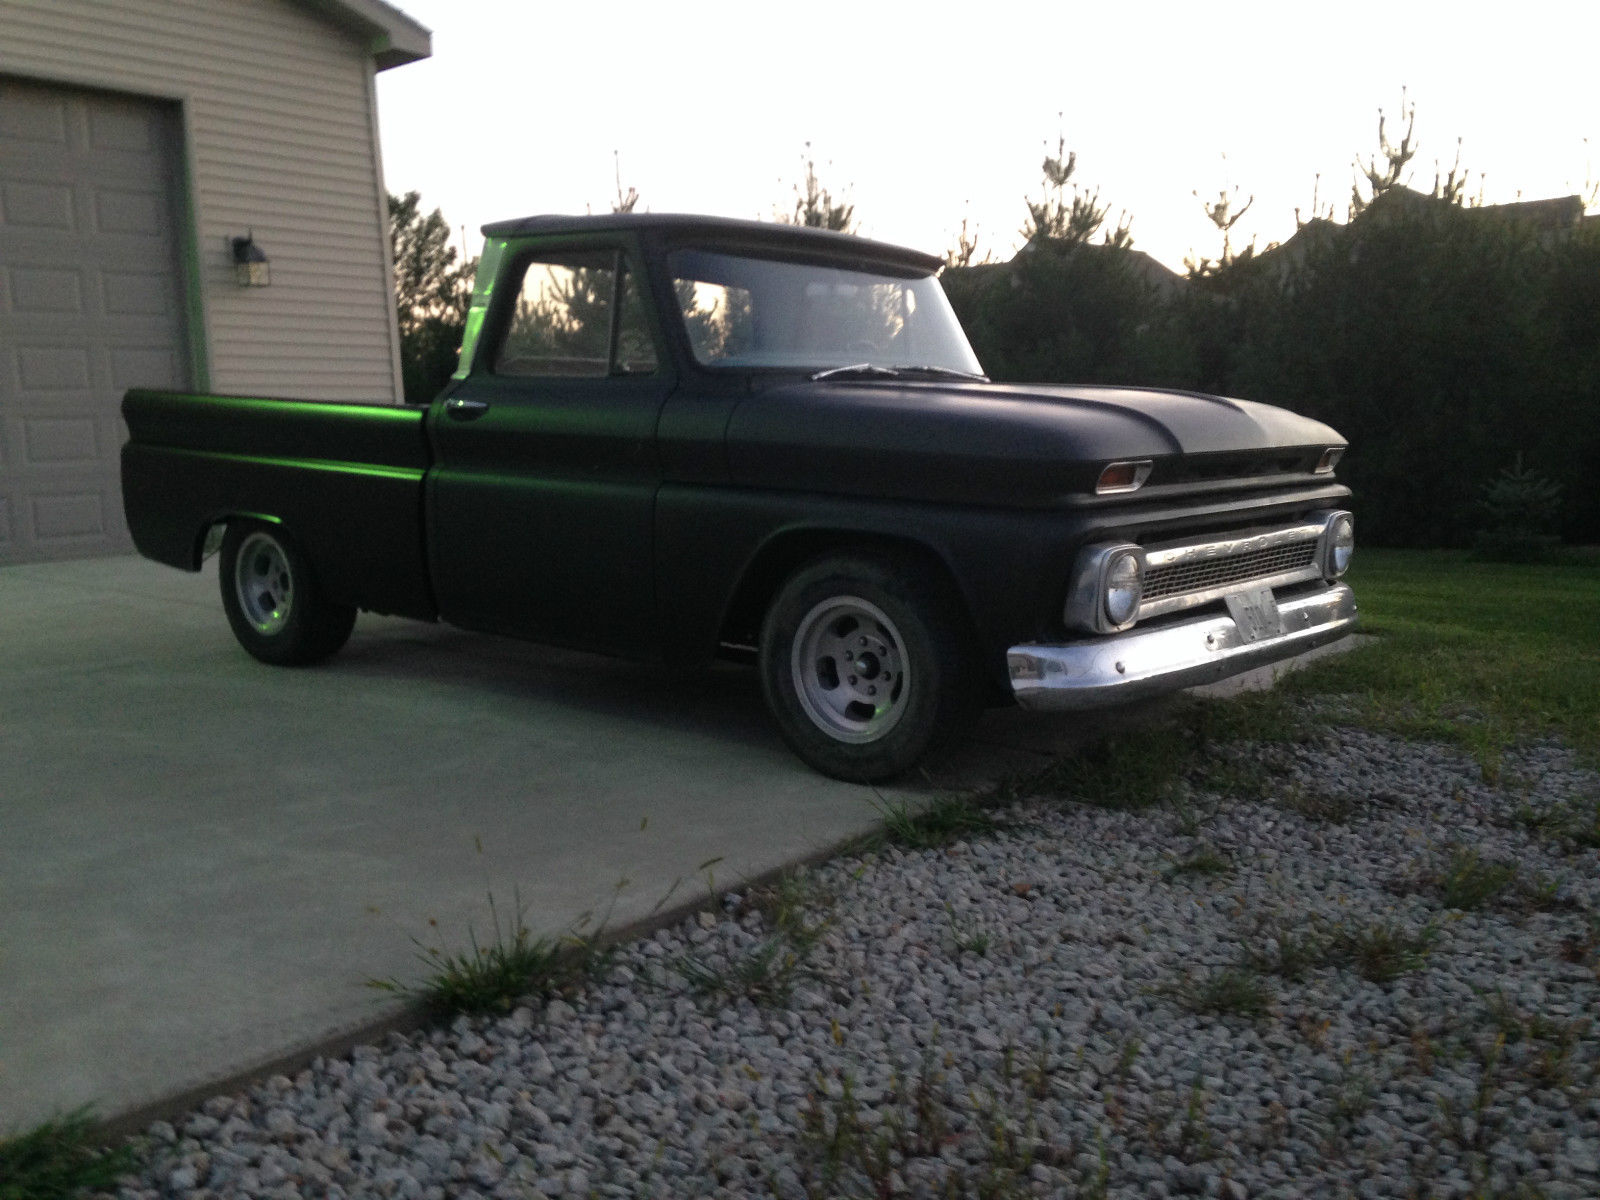 1966 Chevrolet Custom Short Bed Fleetside Truck Project Low Reserve Chevy C10 Slammed For Sale In Washington Illinois United States